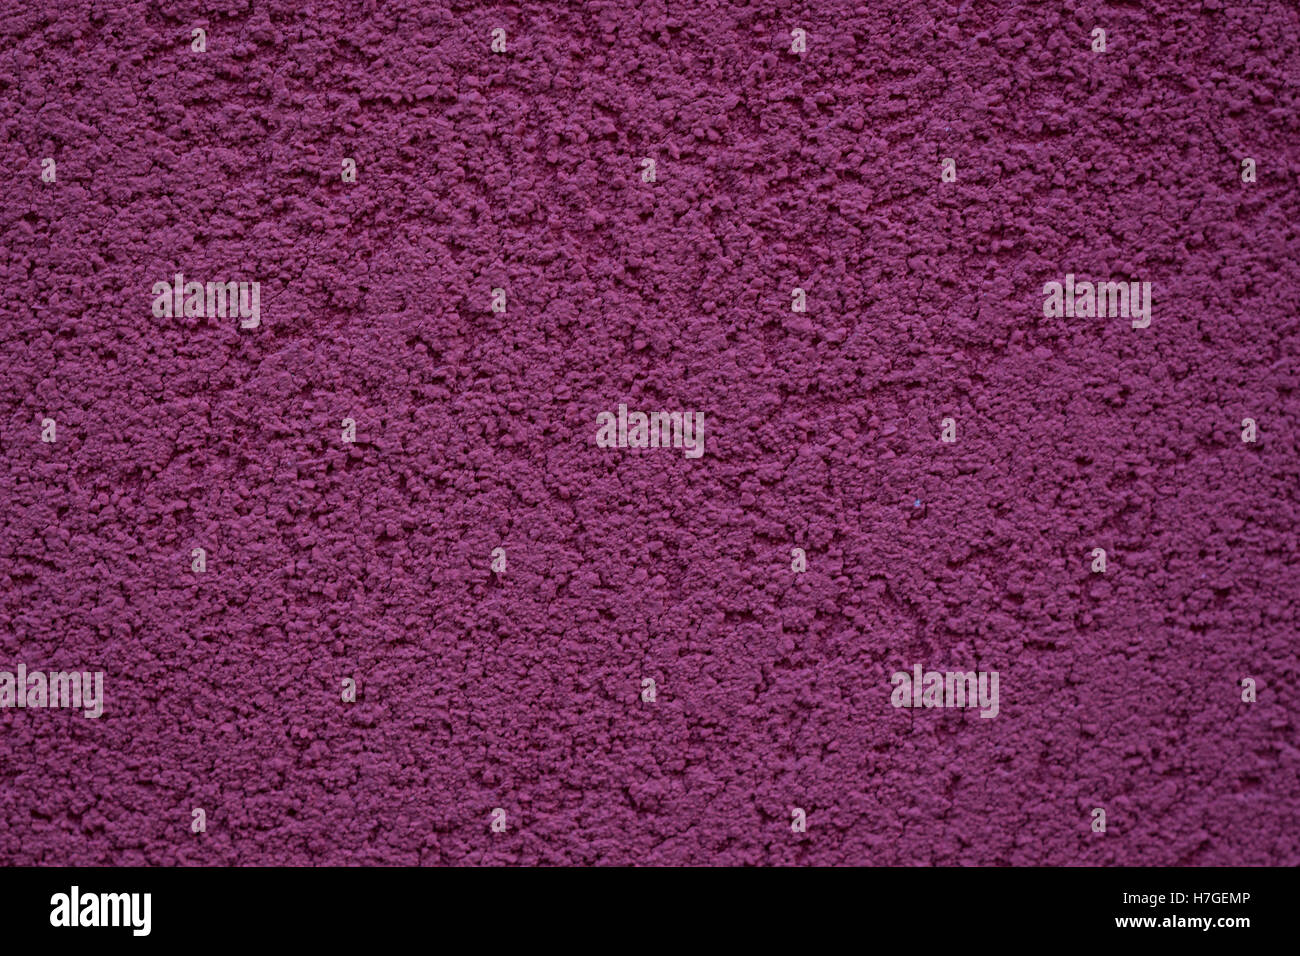 wall color plum for background and texture. horizontal shape - Stock Image